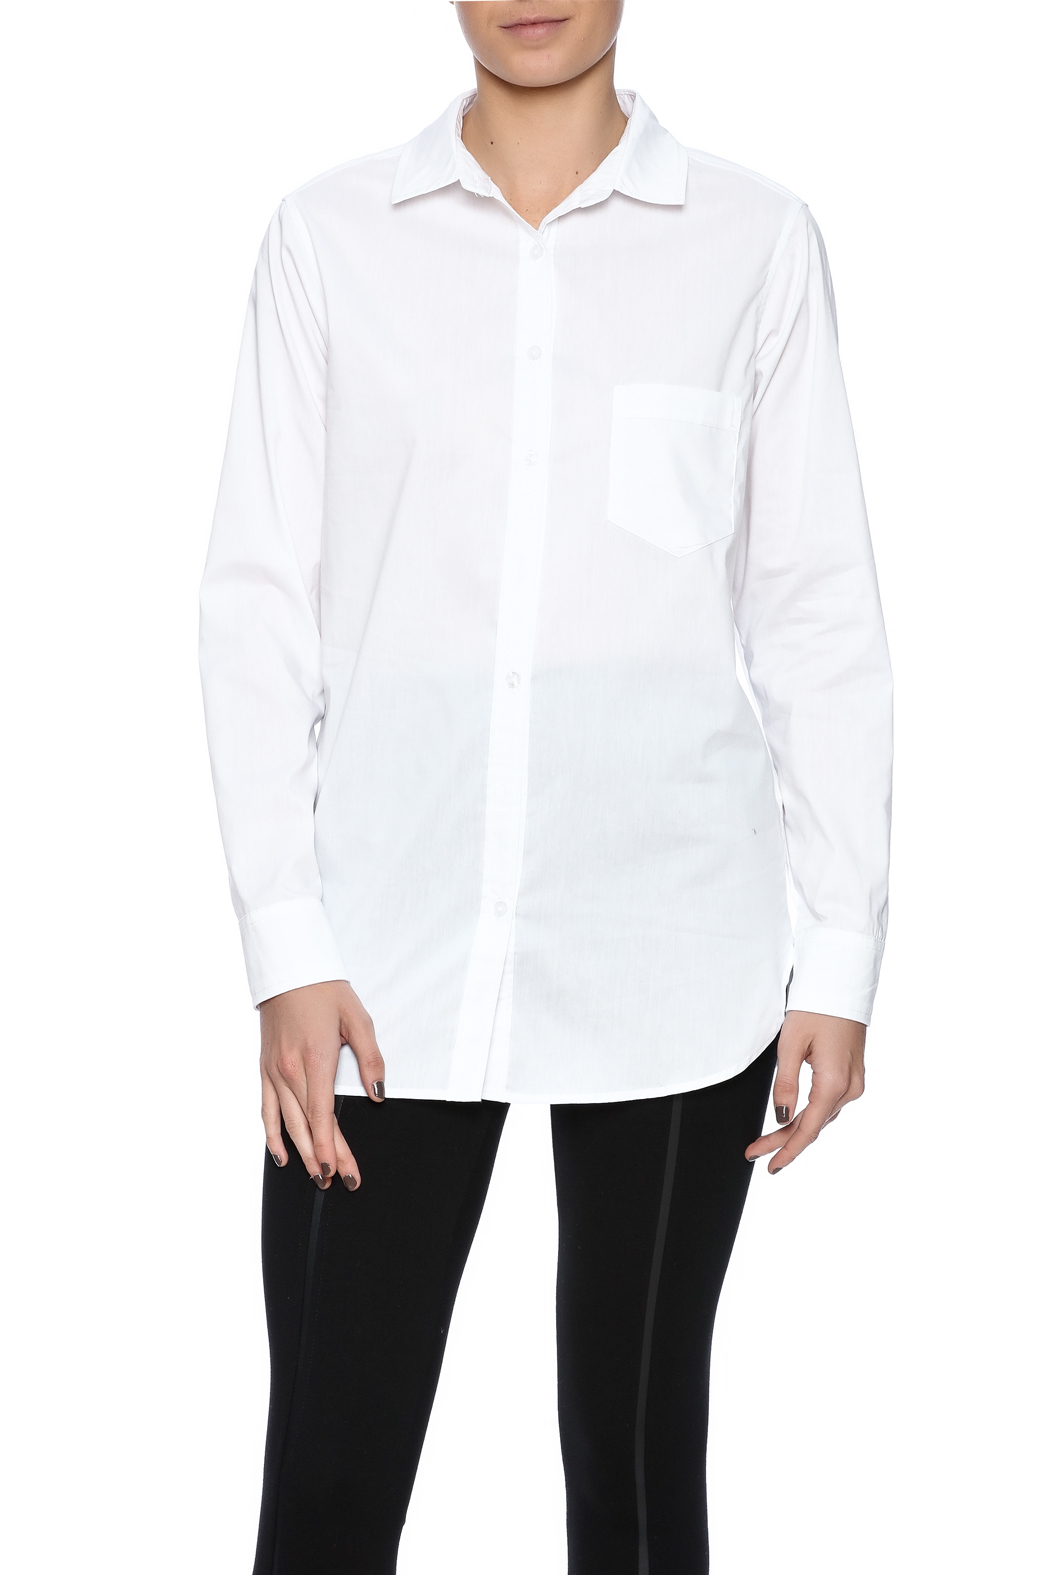 The 6 white shirts you need in your wardrobe. Nothing is more classic than a simple white button-down. I firmly believe this, and the proof is in my closet: I own about 15 of them.